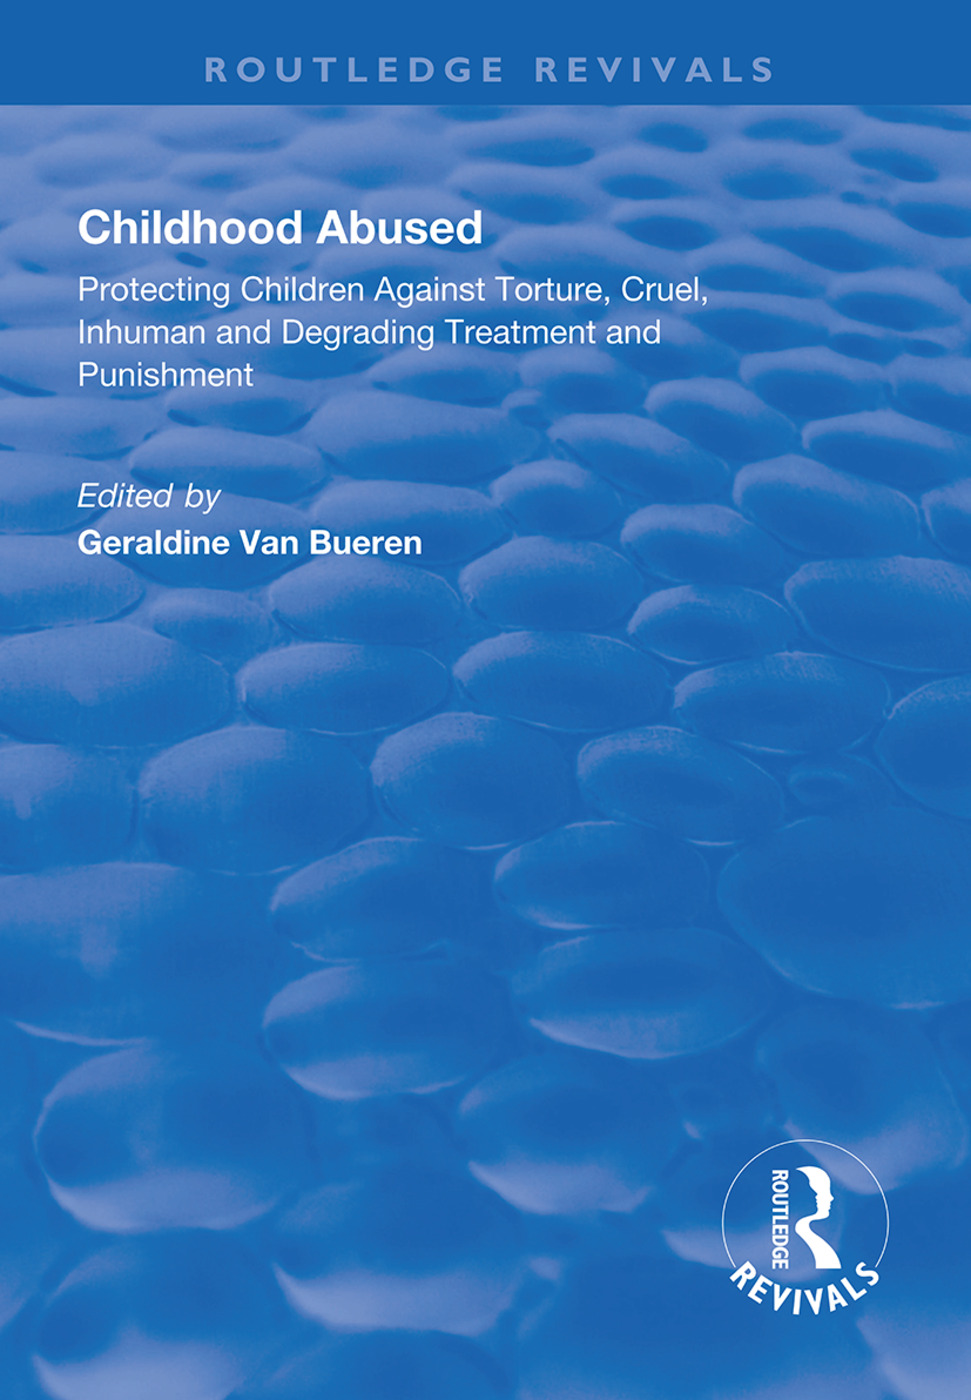 Childhood Abused: Protecting Children Against Torture, Cruel, Inhuman and Degrading Treatment and Punishment book cover